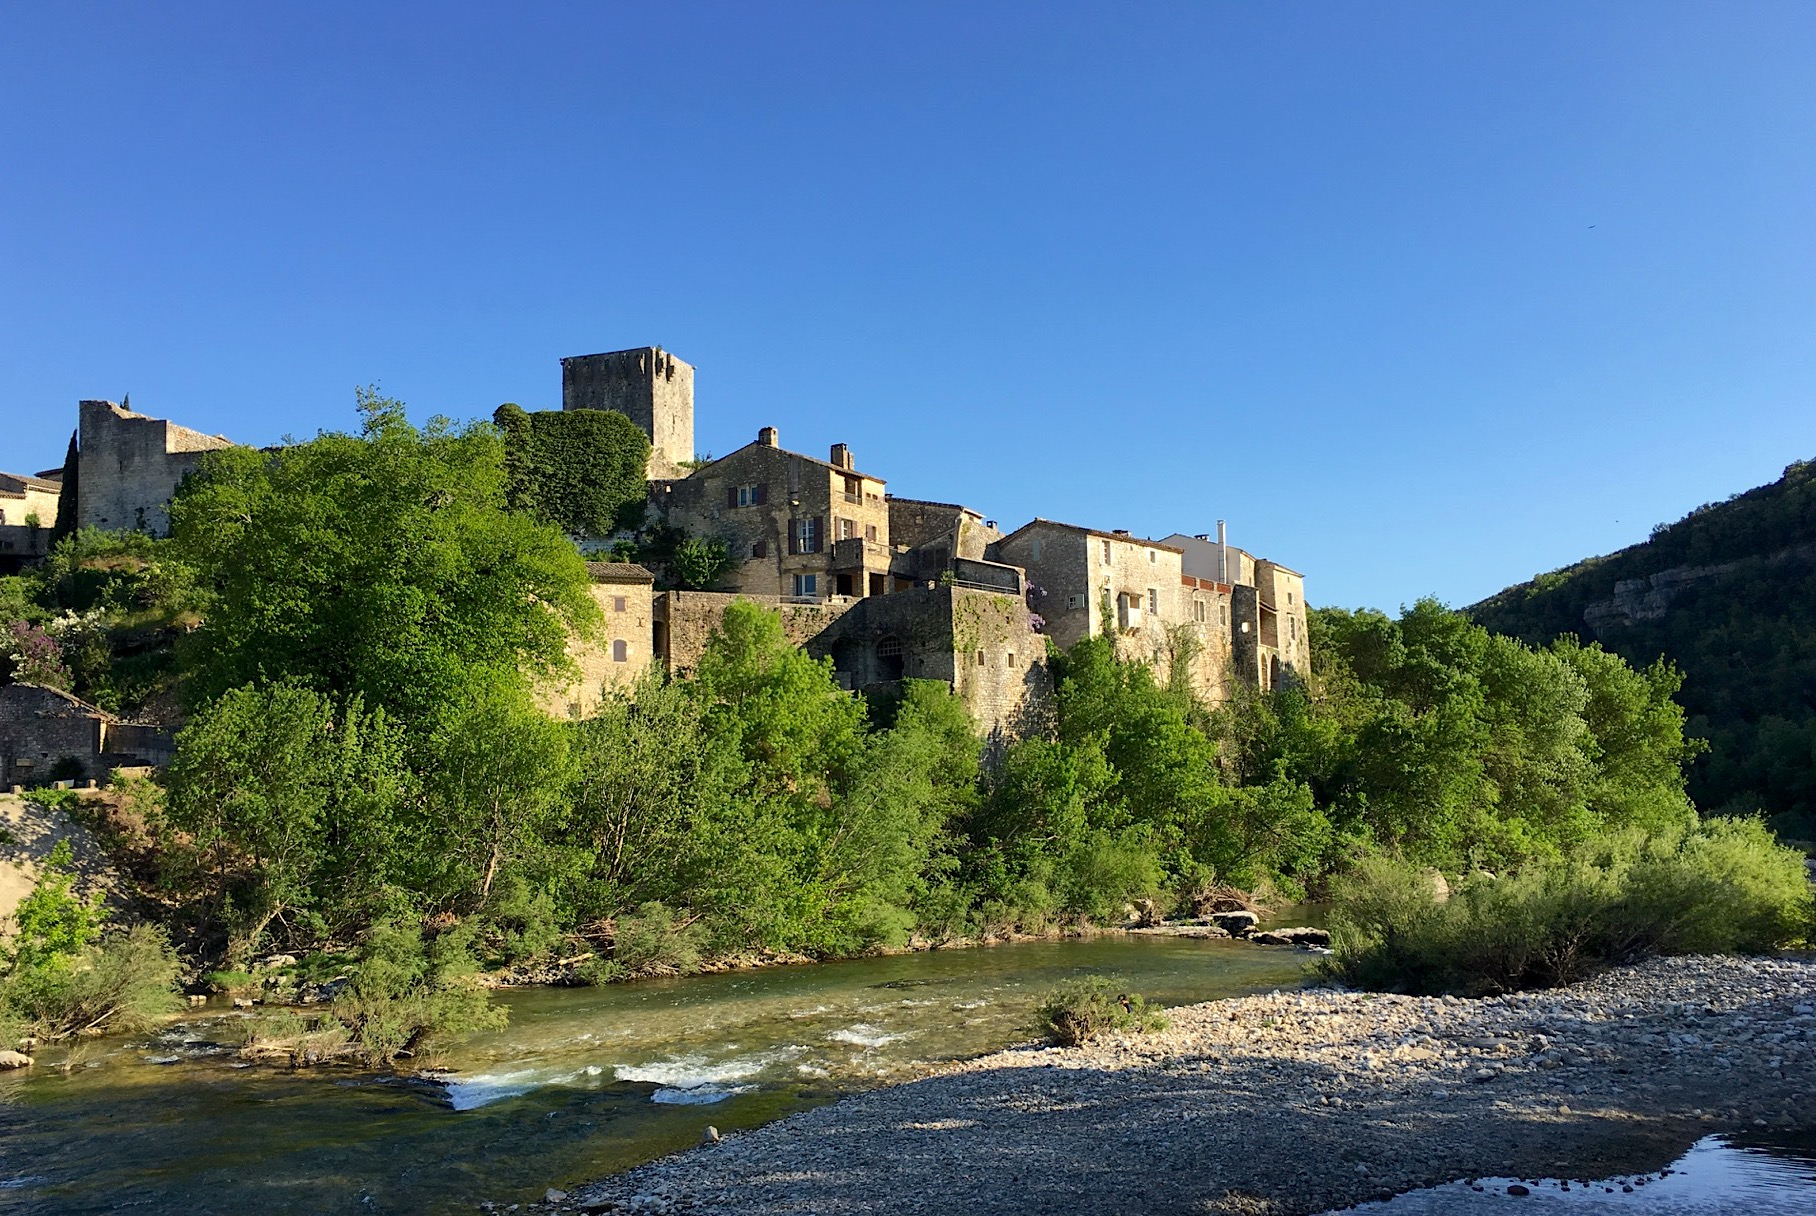 2153 : Montclus, village listed amongst the most beautiful of France, 17th c character property, 165m2, view overlooking the river